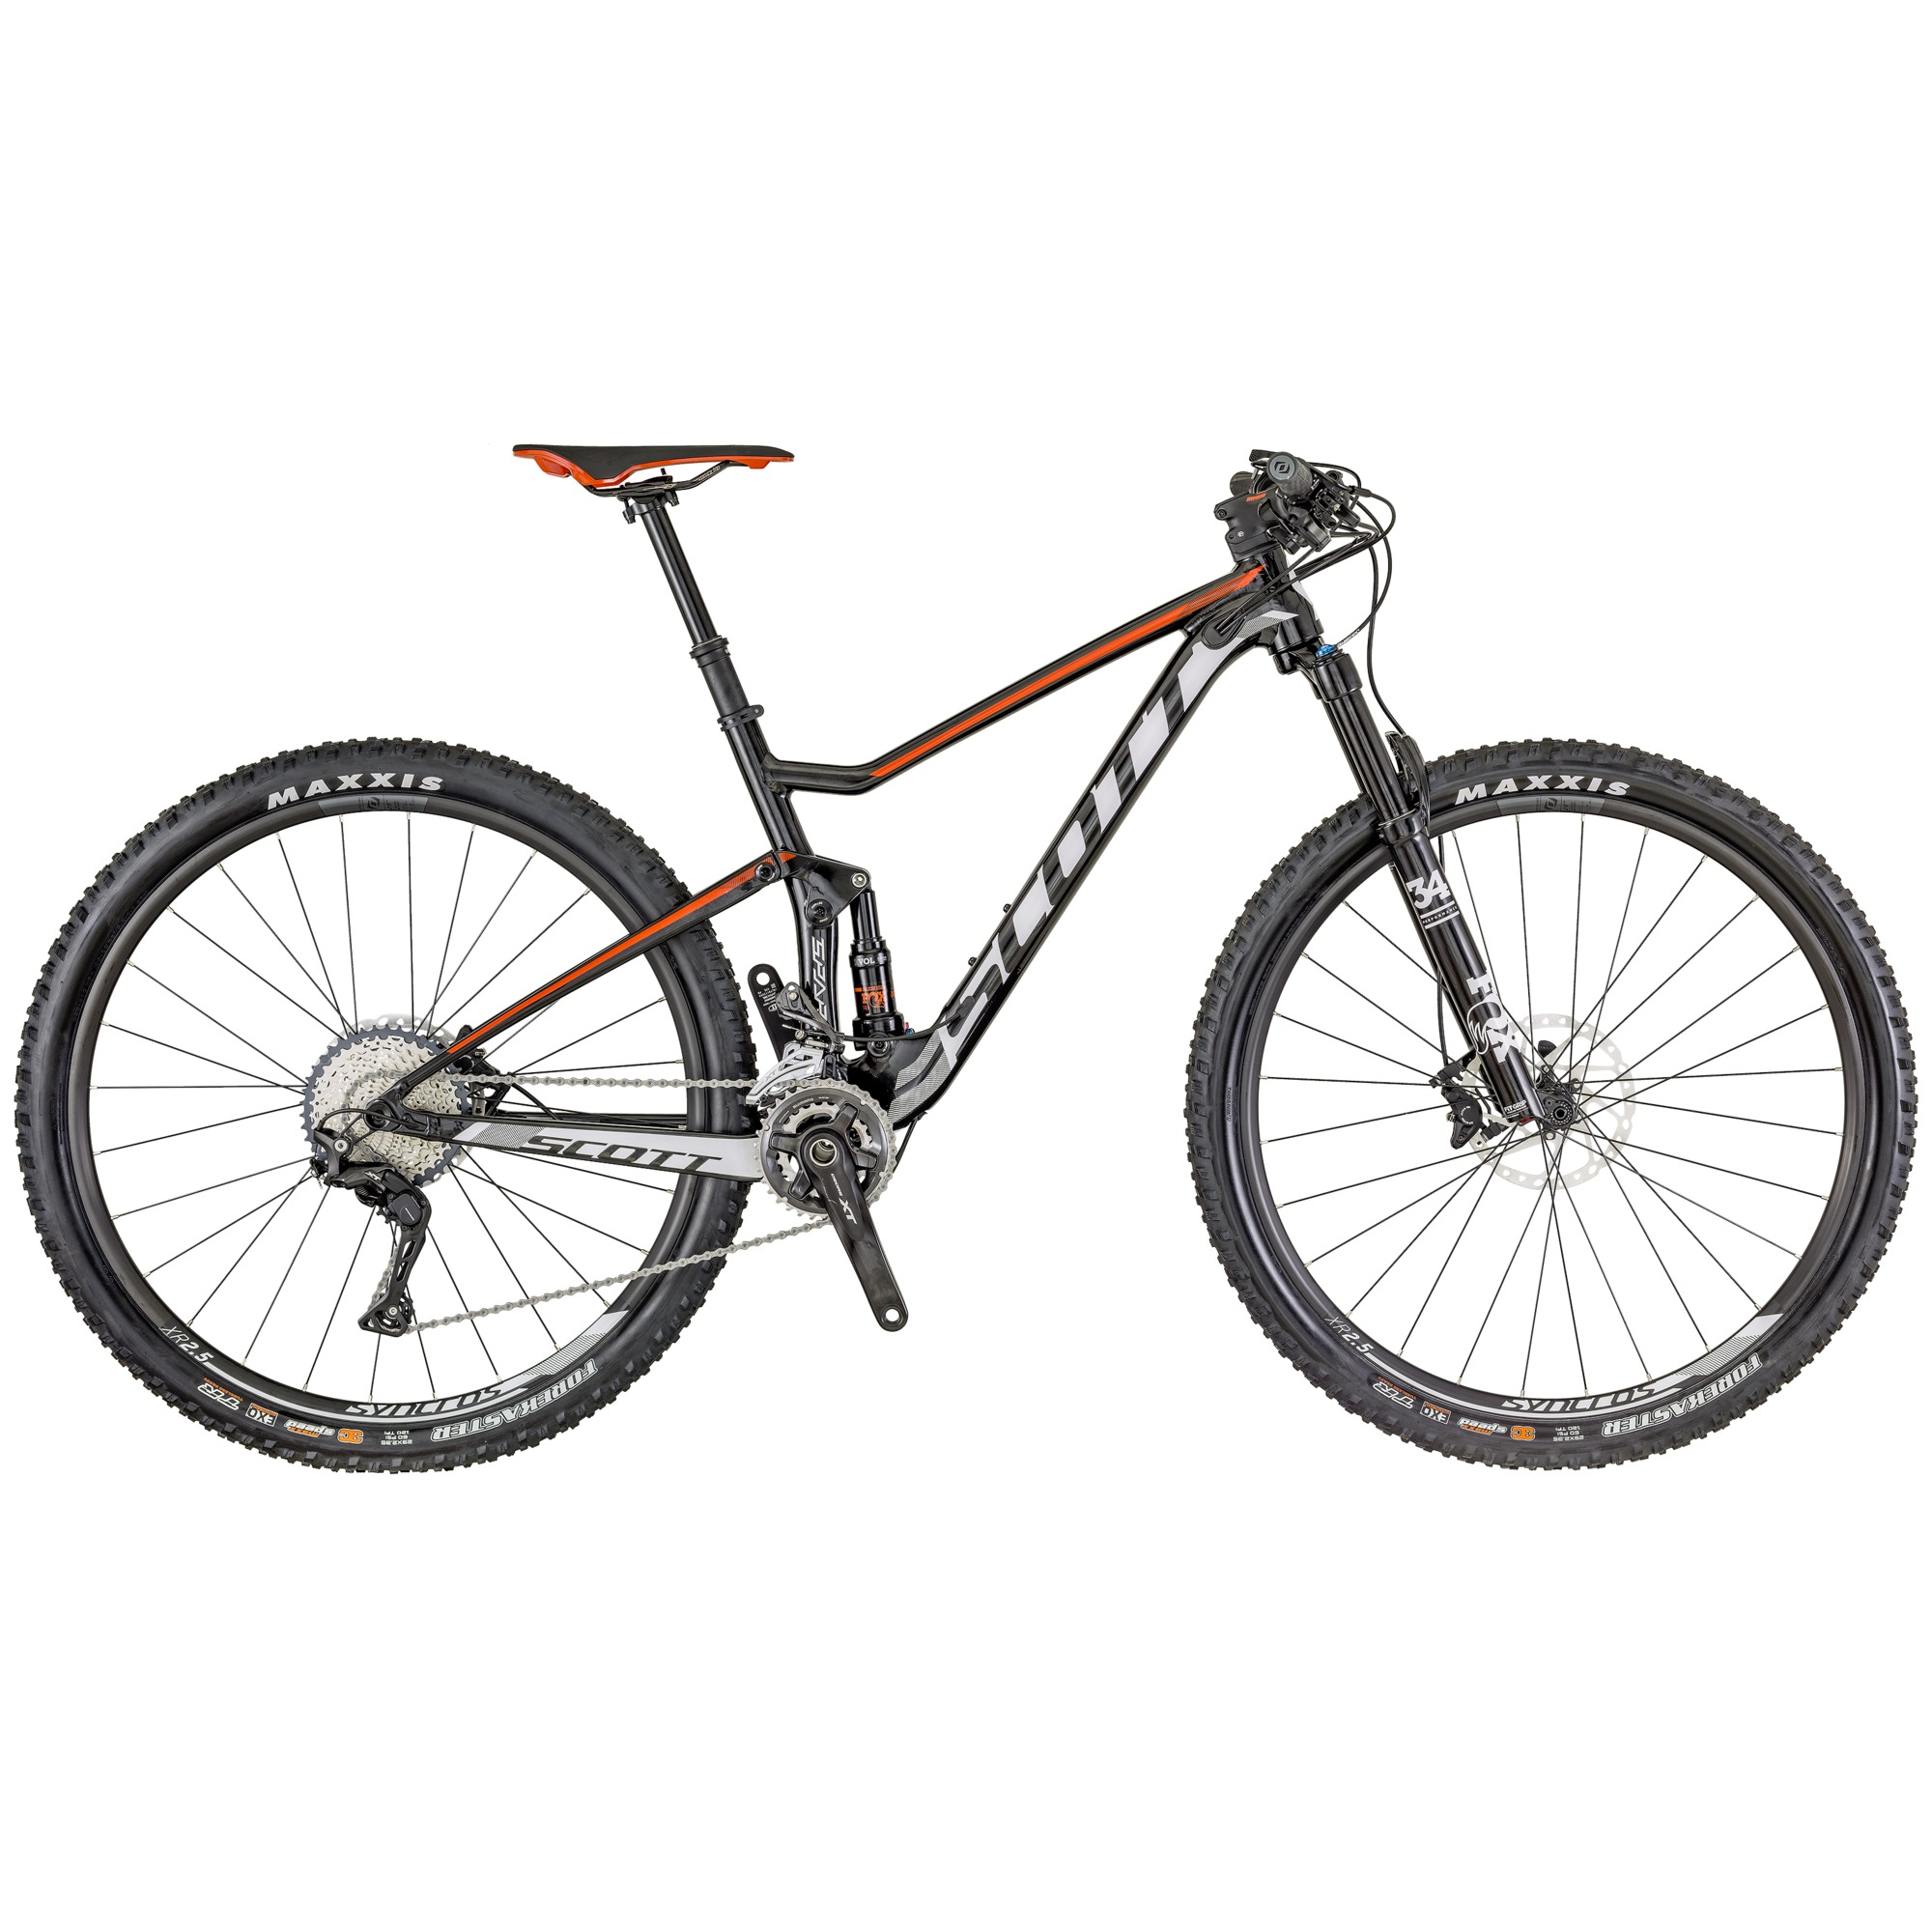 SCOTT Spark 930 Bike XL - Zweirad Homann